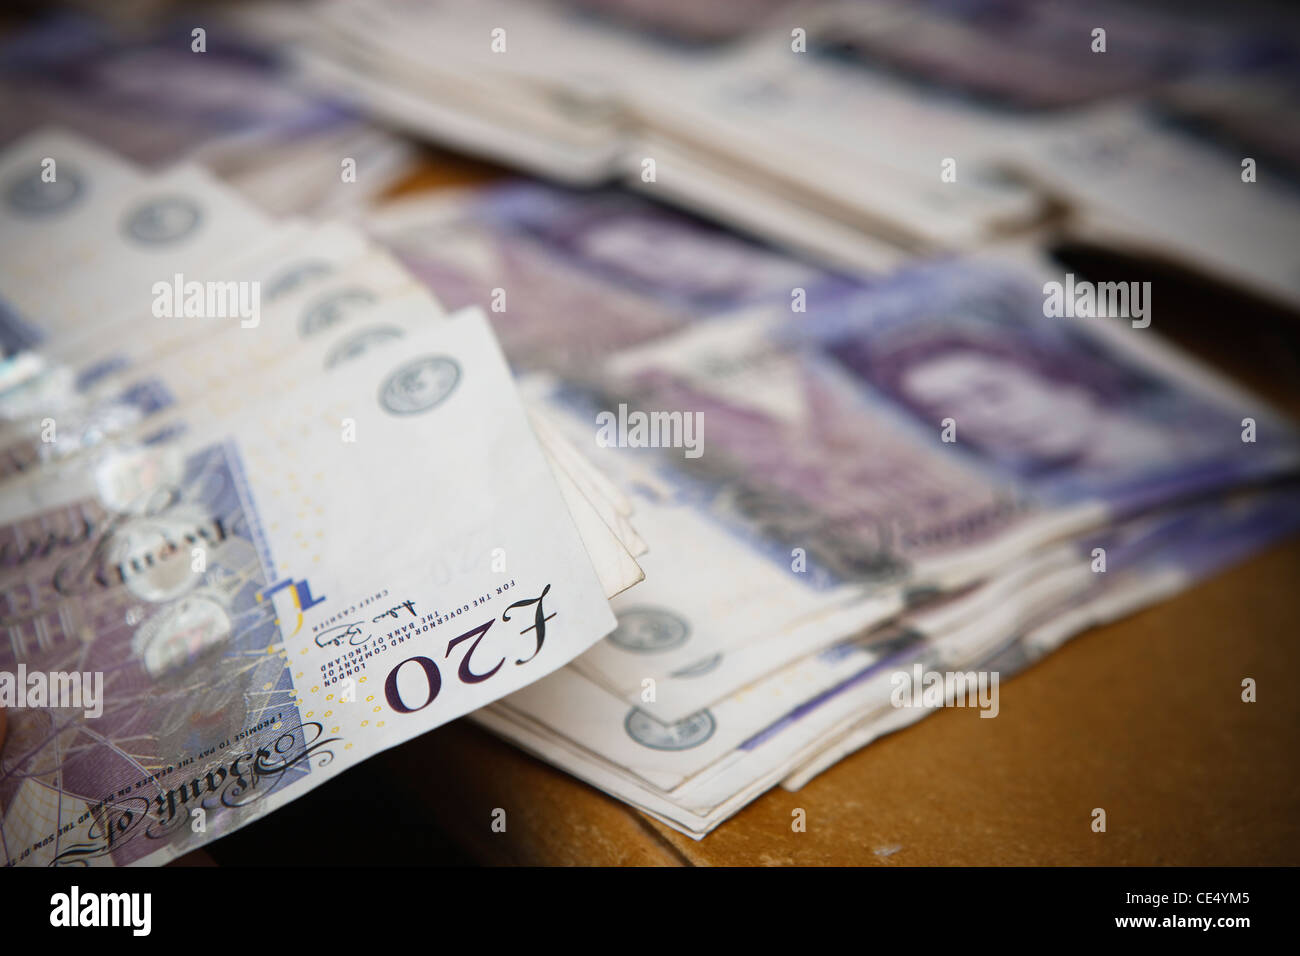 Counting money fan £20 notes GBR sterling currency desk view landscape piles - Stock Image